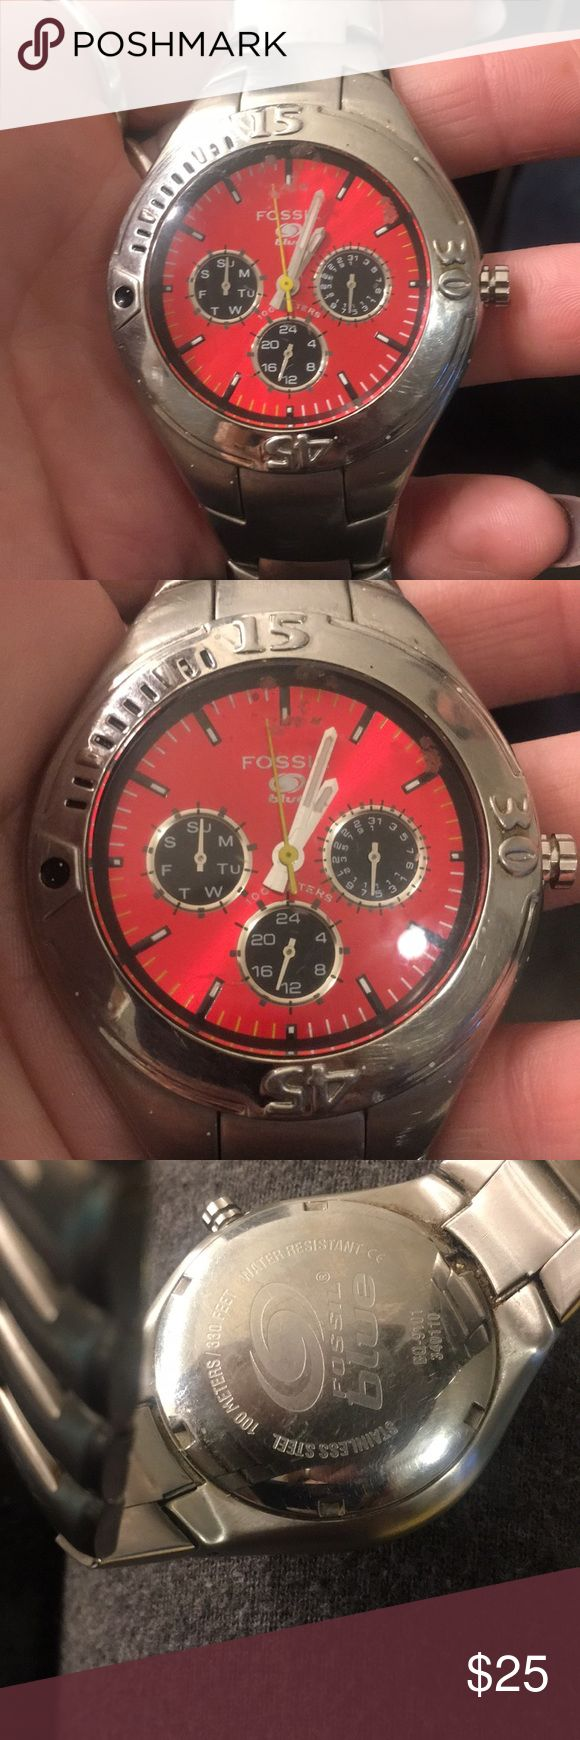 Fossil blue watch Used fossil watch , stainless steel with red face . Watch does not work. Serial number on back. Fair condition Fossil Accessories Watches